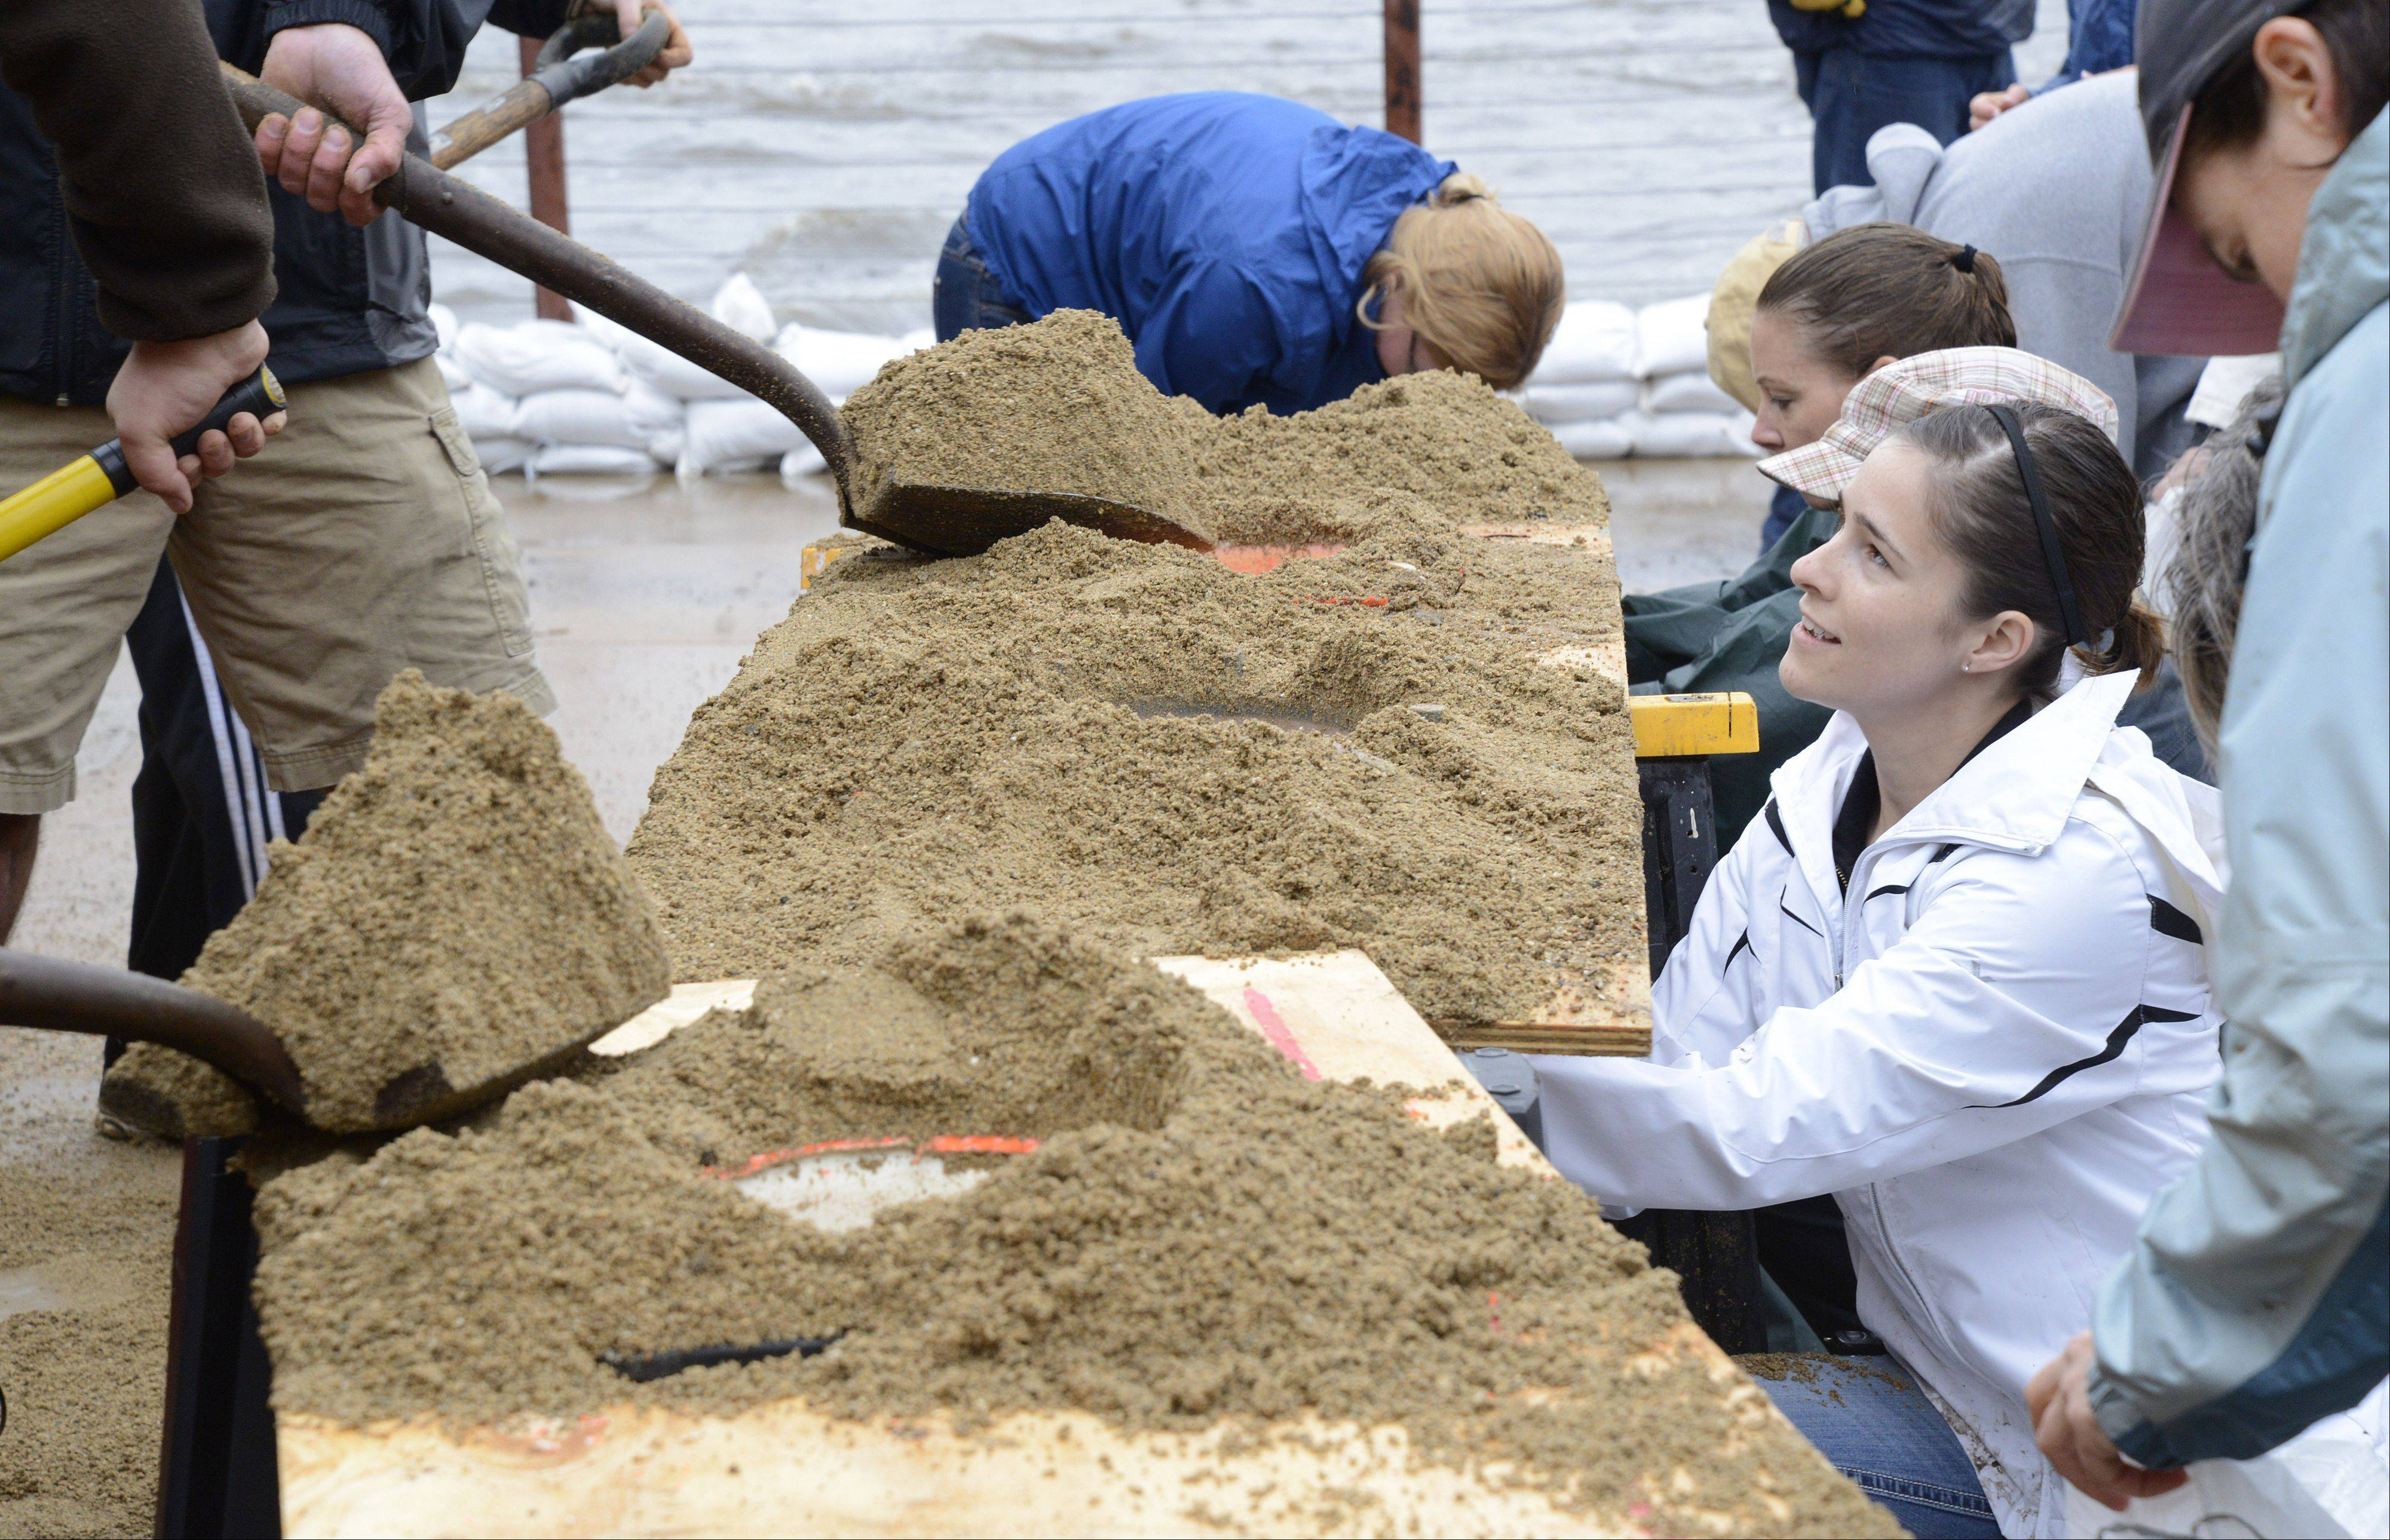 Rachel Giblin of Aurora helps sandbag at the Herrington Inn in Geneva on Thursday, April 18.